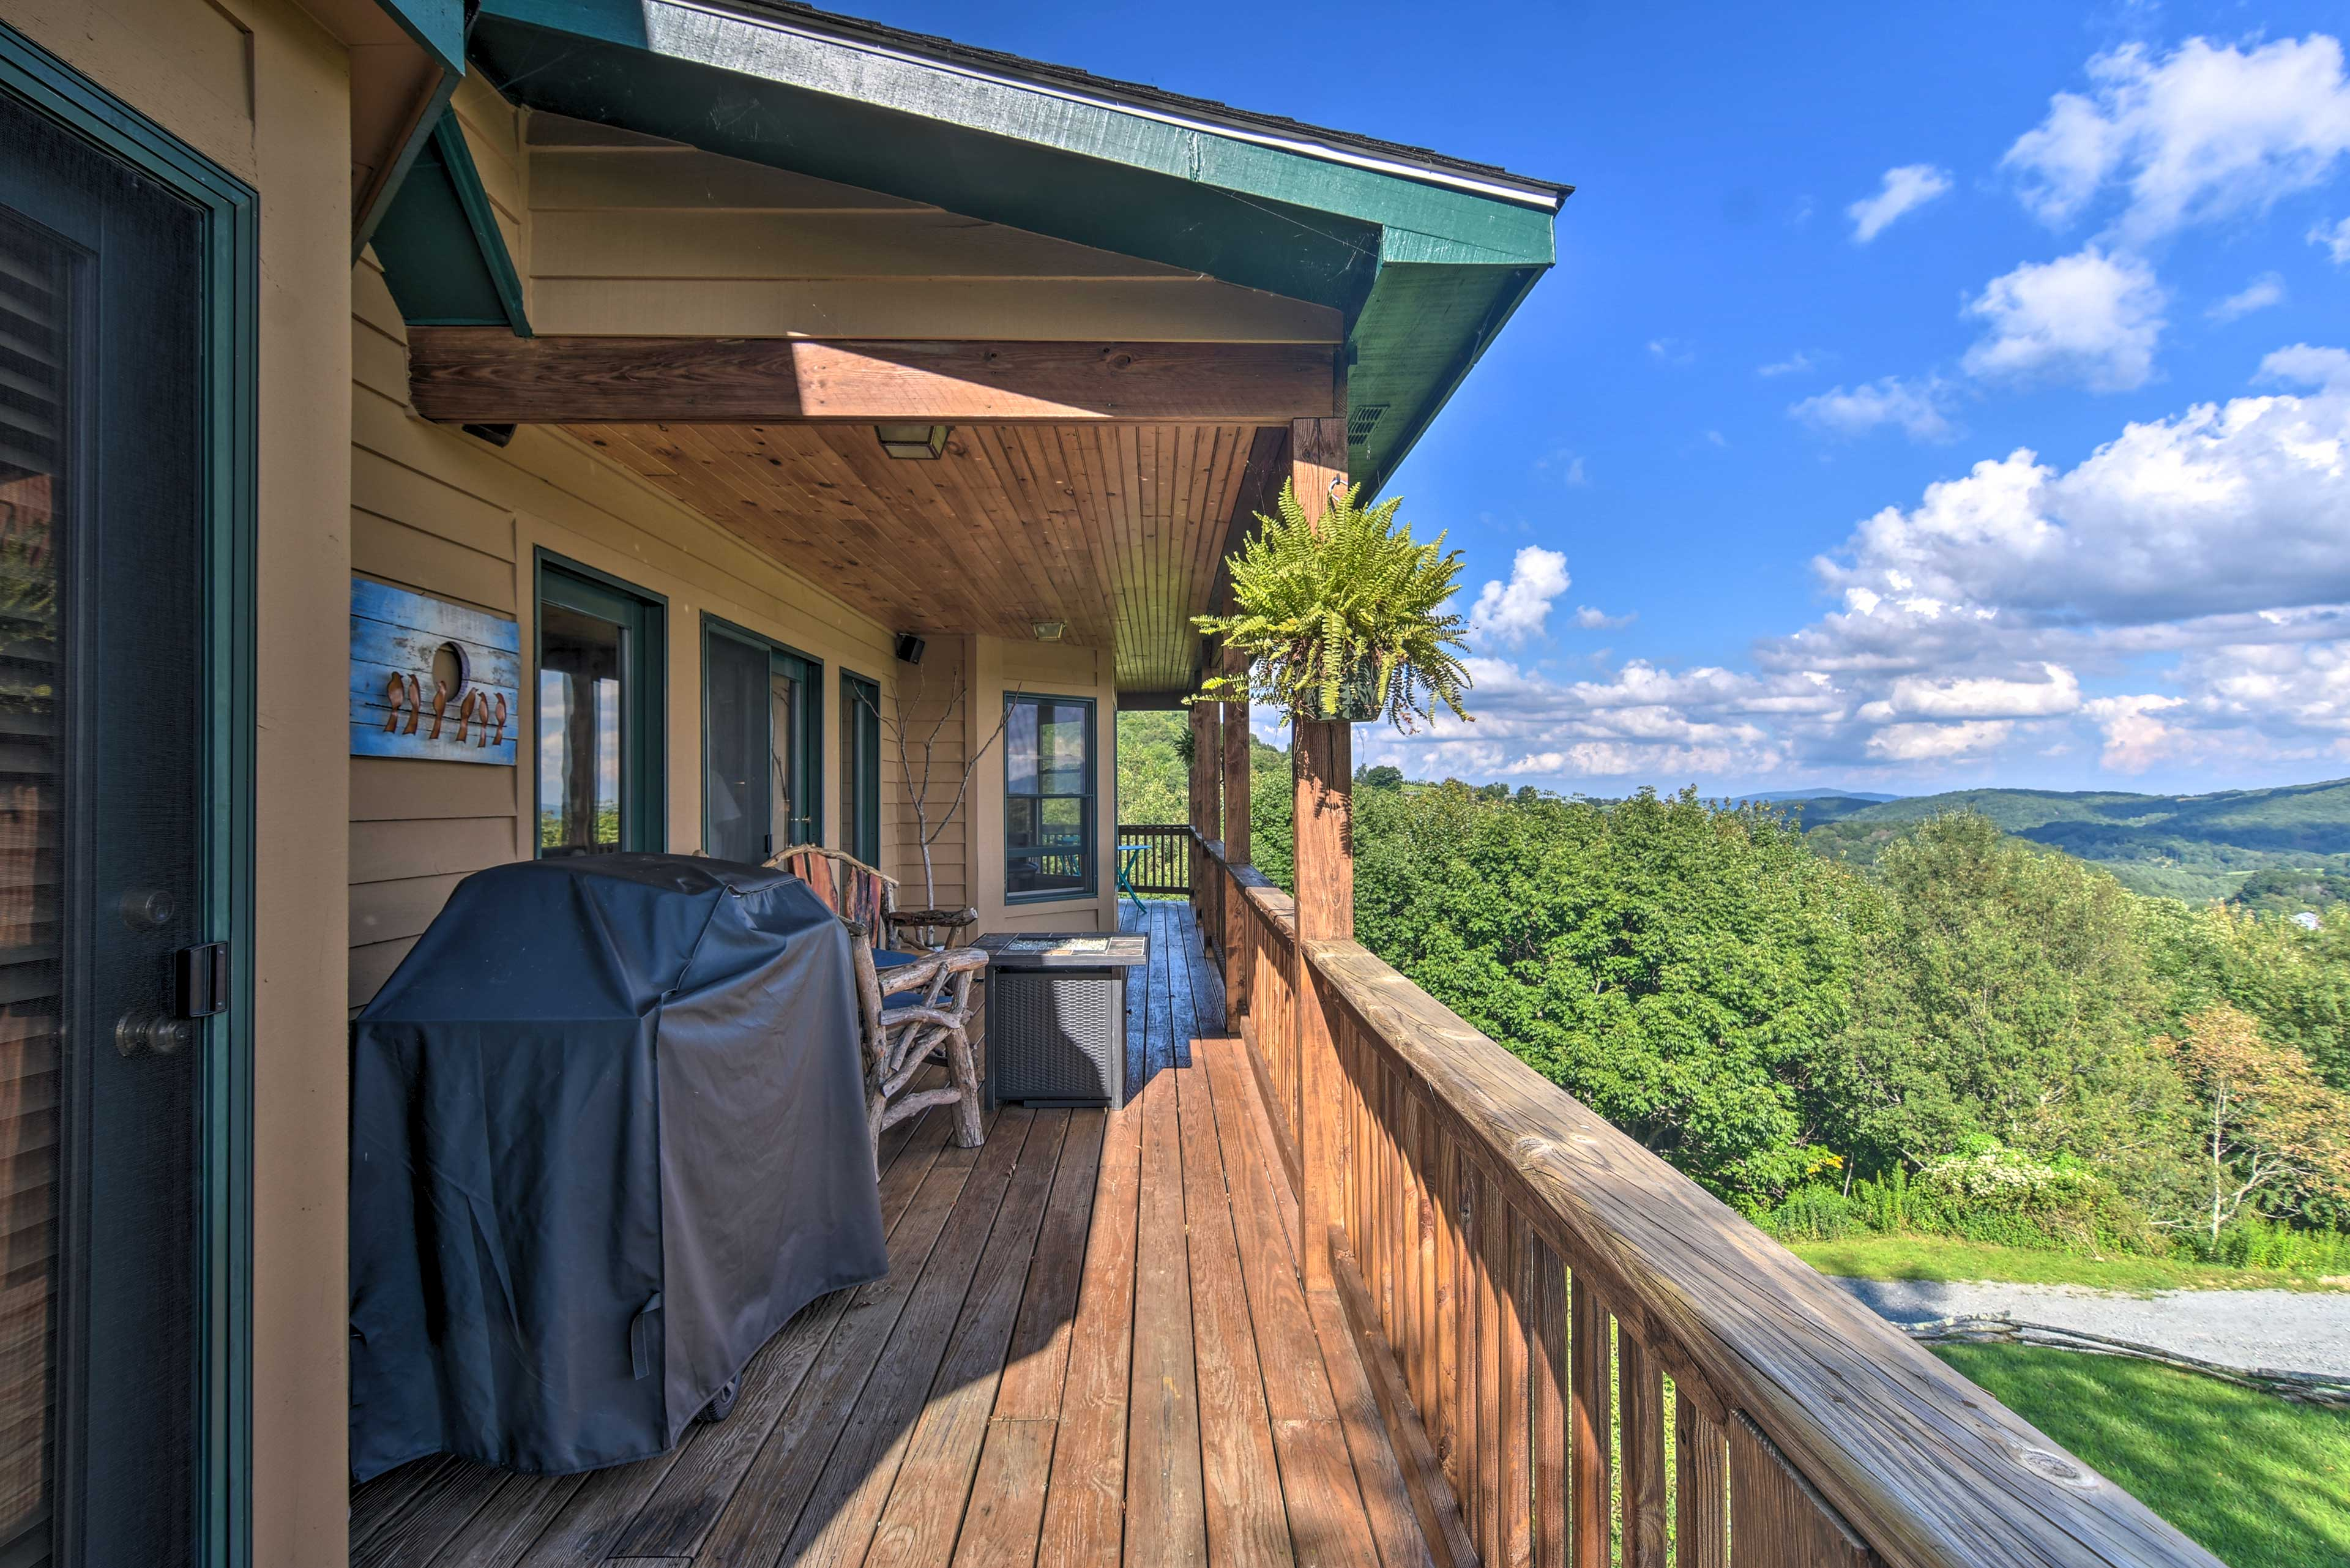 The deck offers stunning views and a stainless steel barbecue grill.